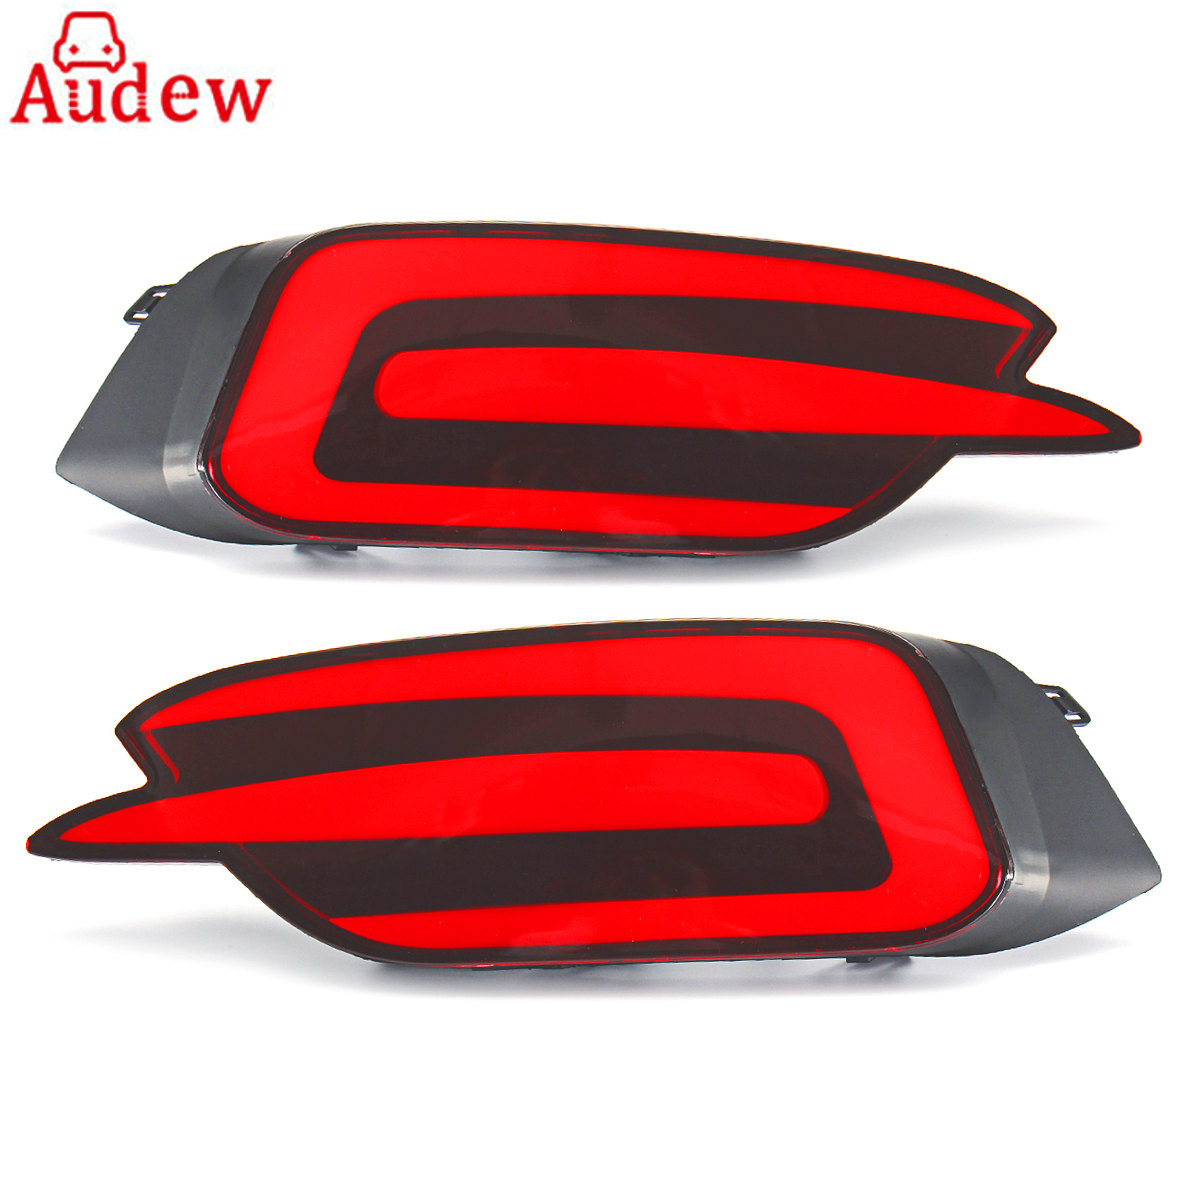 2Pcs Car Rear Bumper Brake Lights Red LED Tail Lamp For Honda/Civic 10th 2016-2017 dongzhen fit for nissan bluebird sylphy almera led red rear bumper reflectors light night running brake warning lights lamp